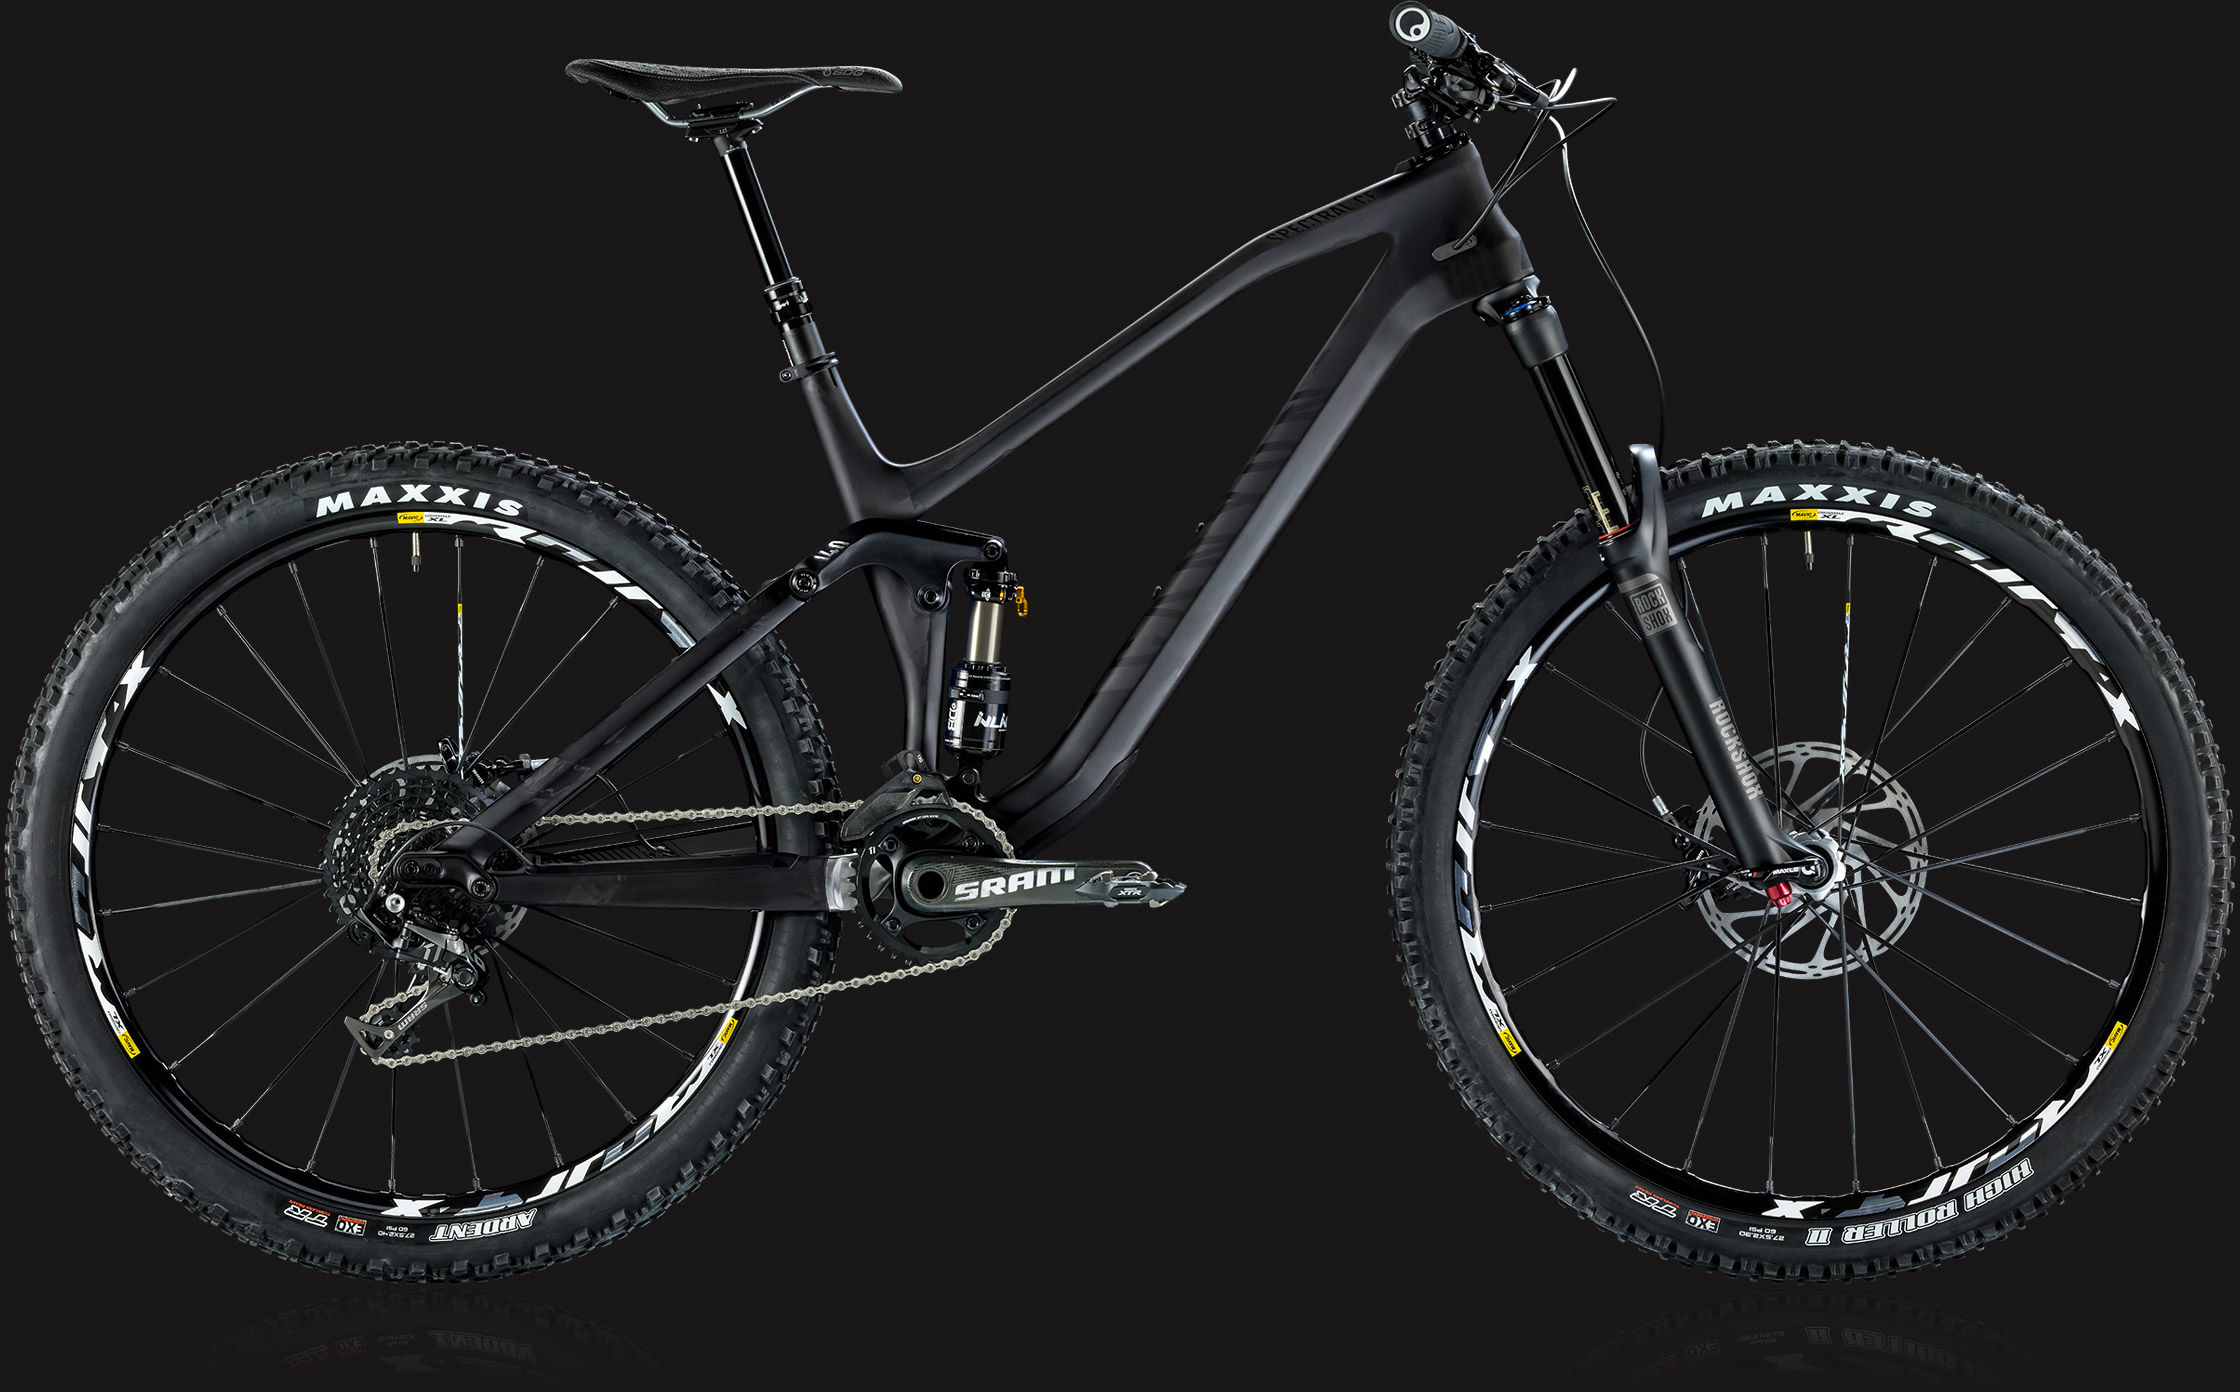 Canyon Spectral CF 9 0 EX 2015 review - The Bike List